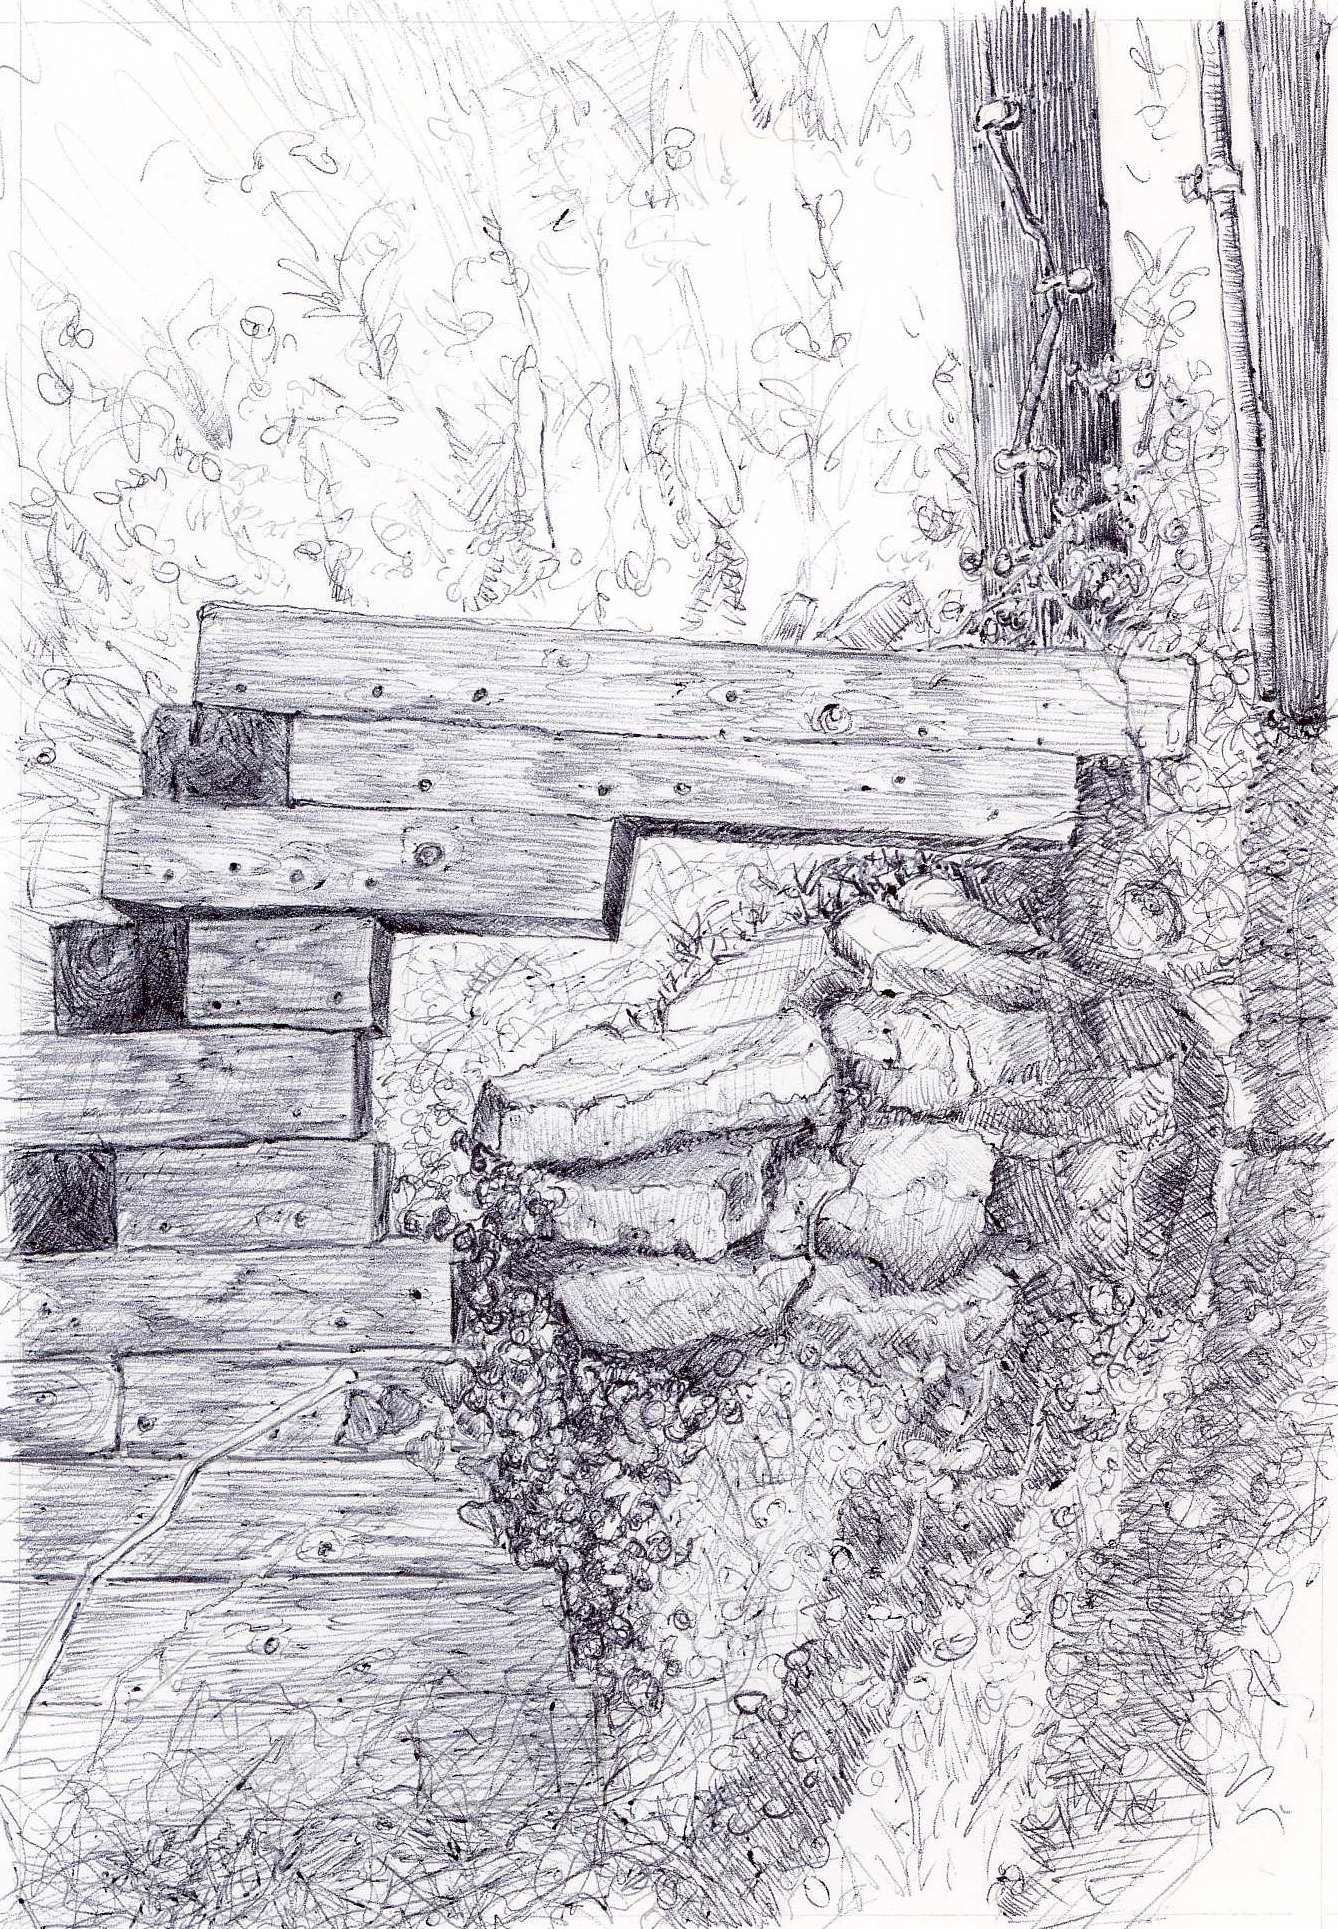 "The End of the Lane, Monroe St., 4"" 6"", ball point pen, 2014"